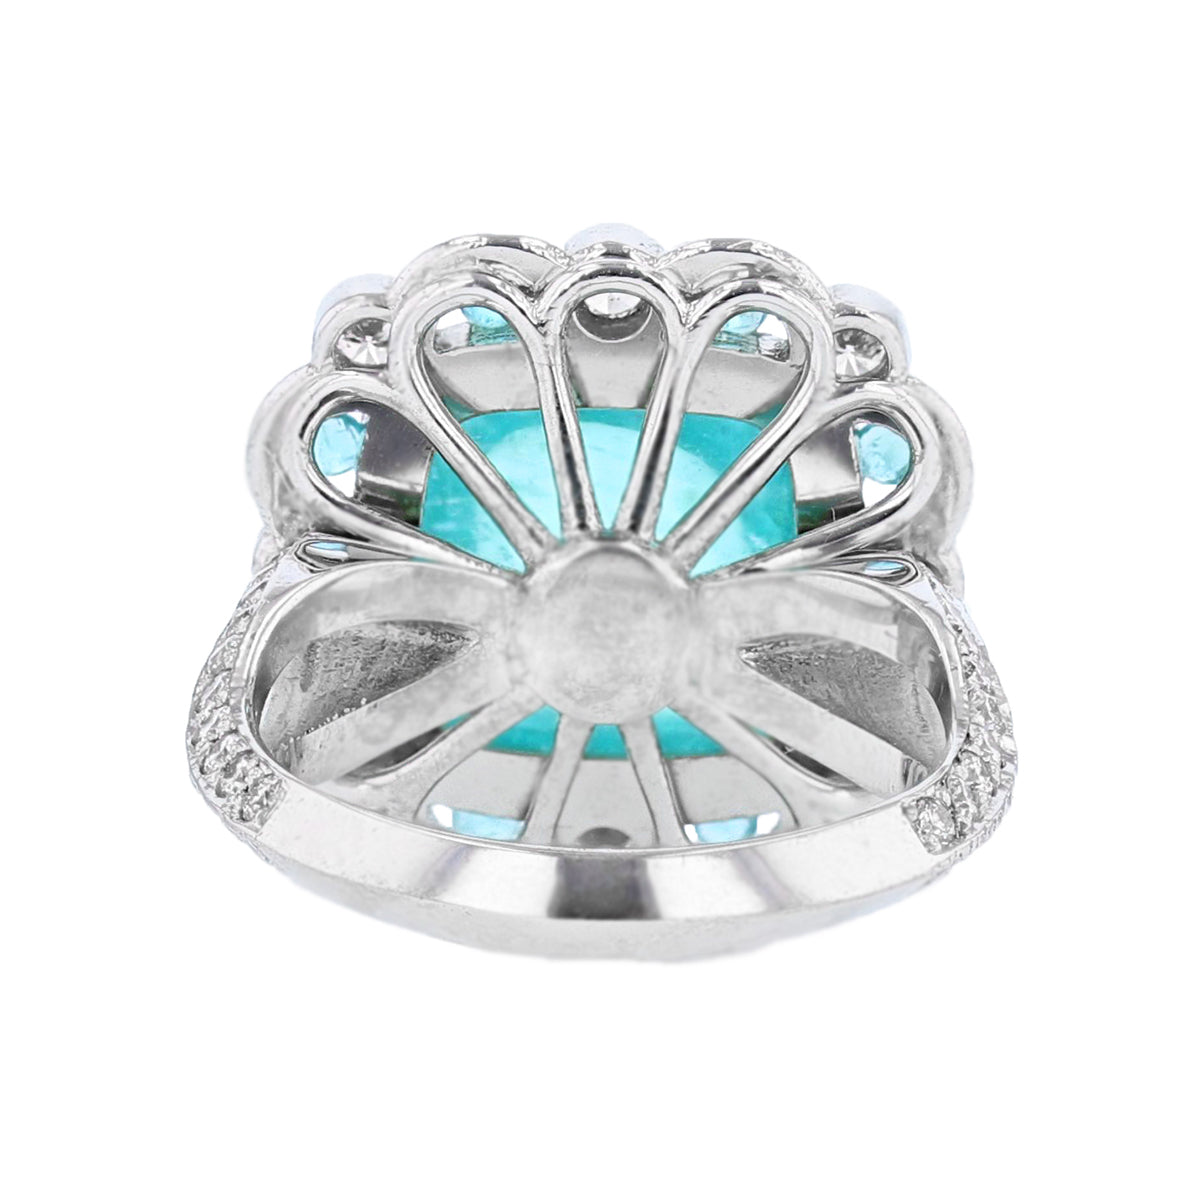 18K White Gold 6.62 Carat Cabachon Paraiba Tourmaline and Diamond Ring - Nazarelle